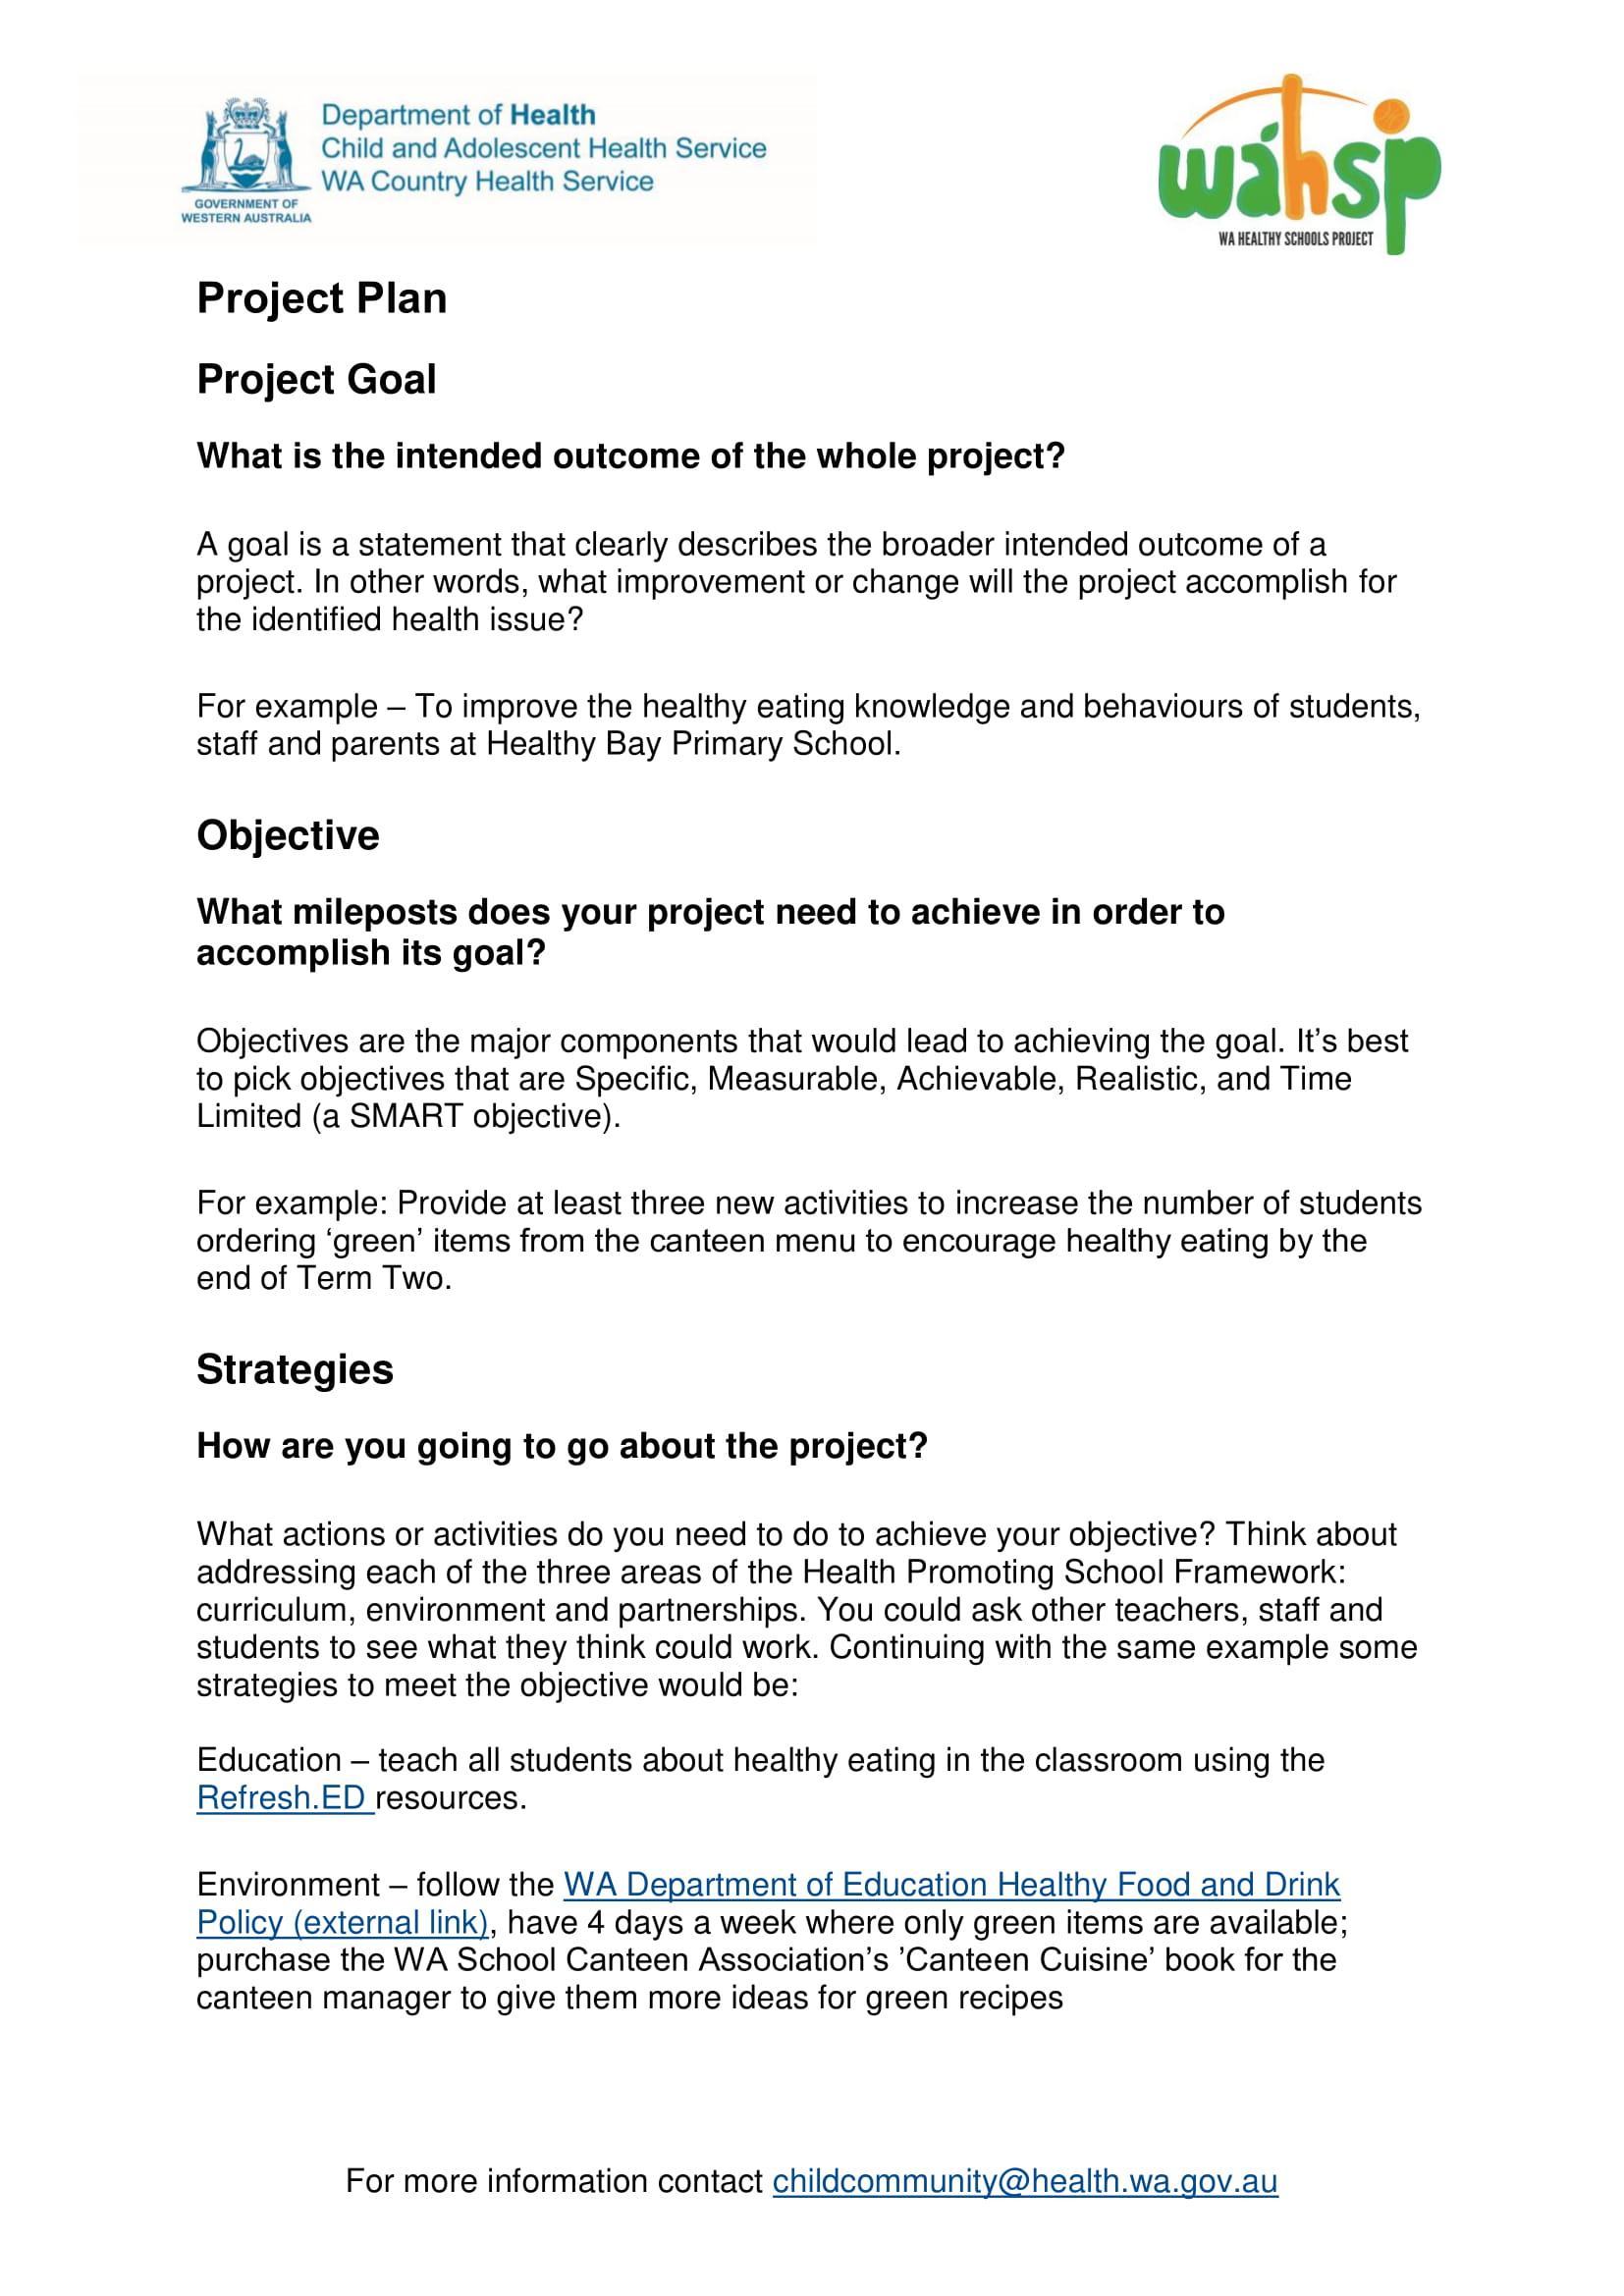 Project Action Plan Template | 19 Project Action Plan Examples Pdf